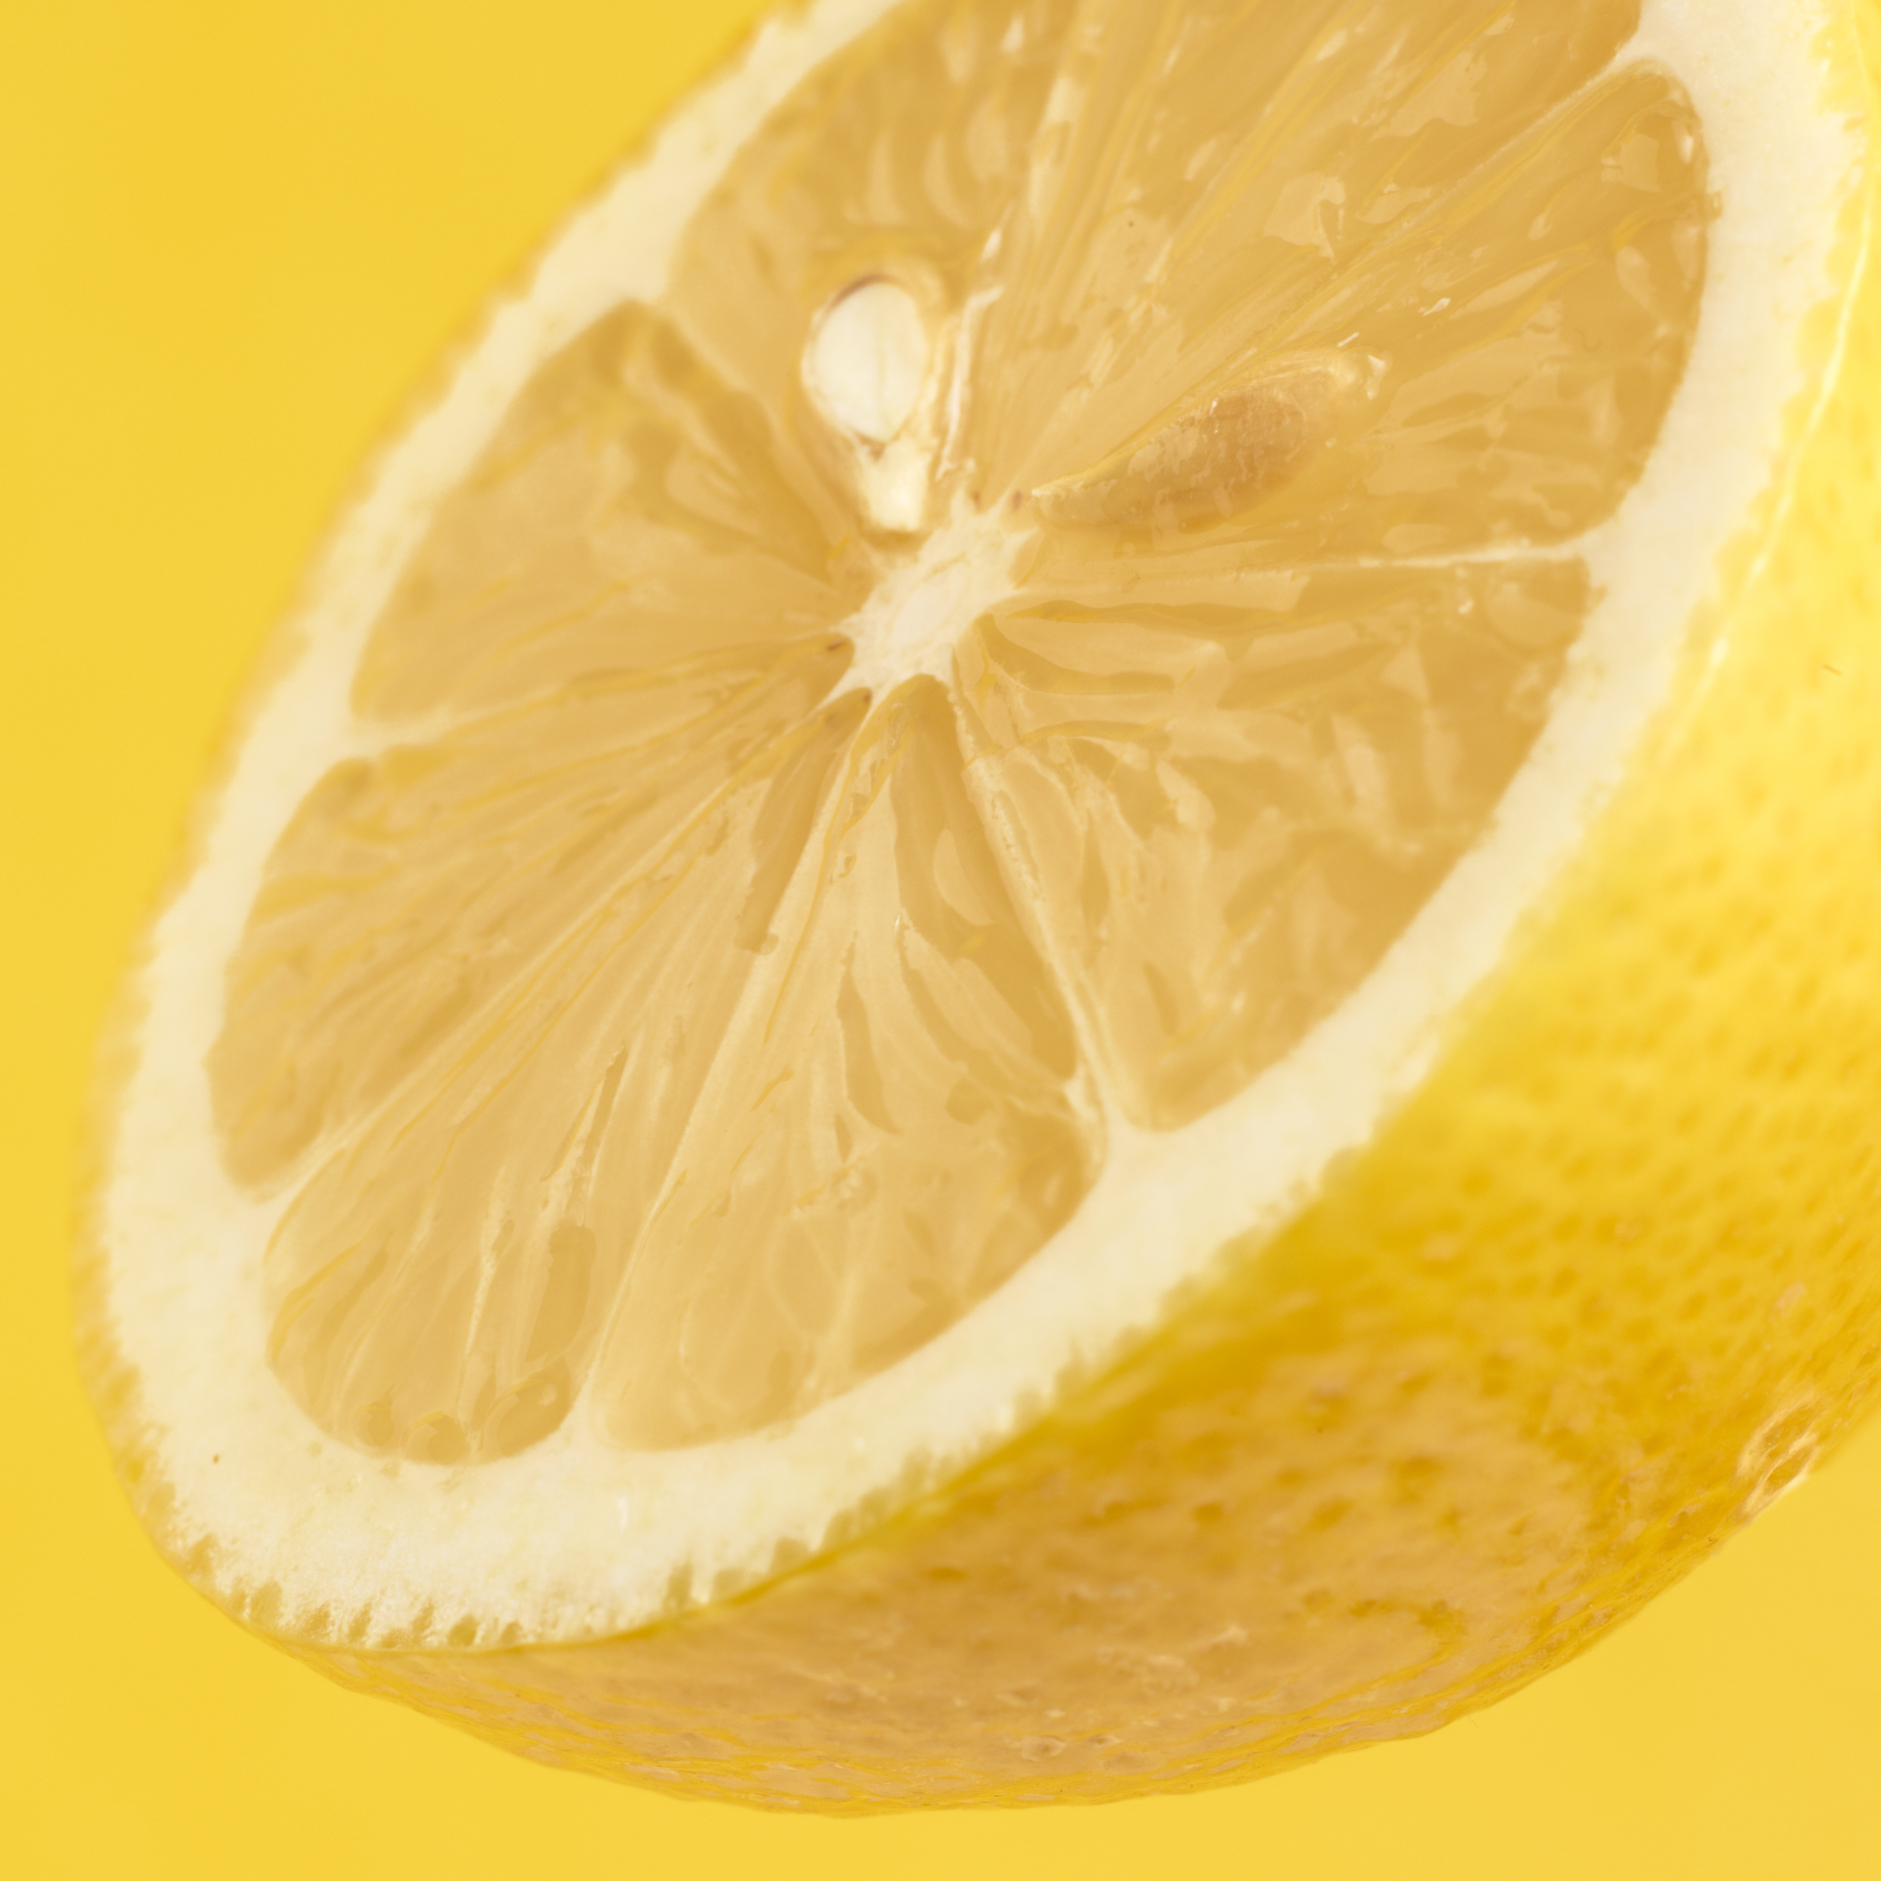 lemon copy.jpg